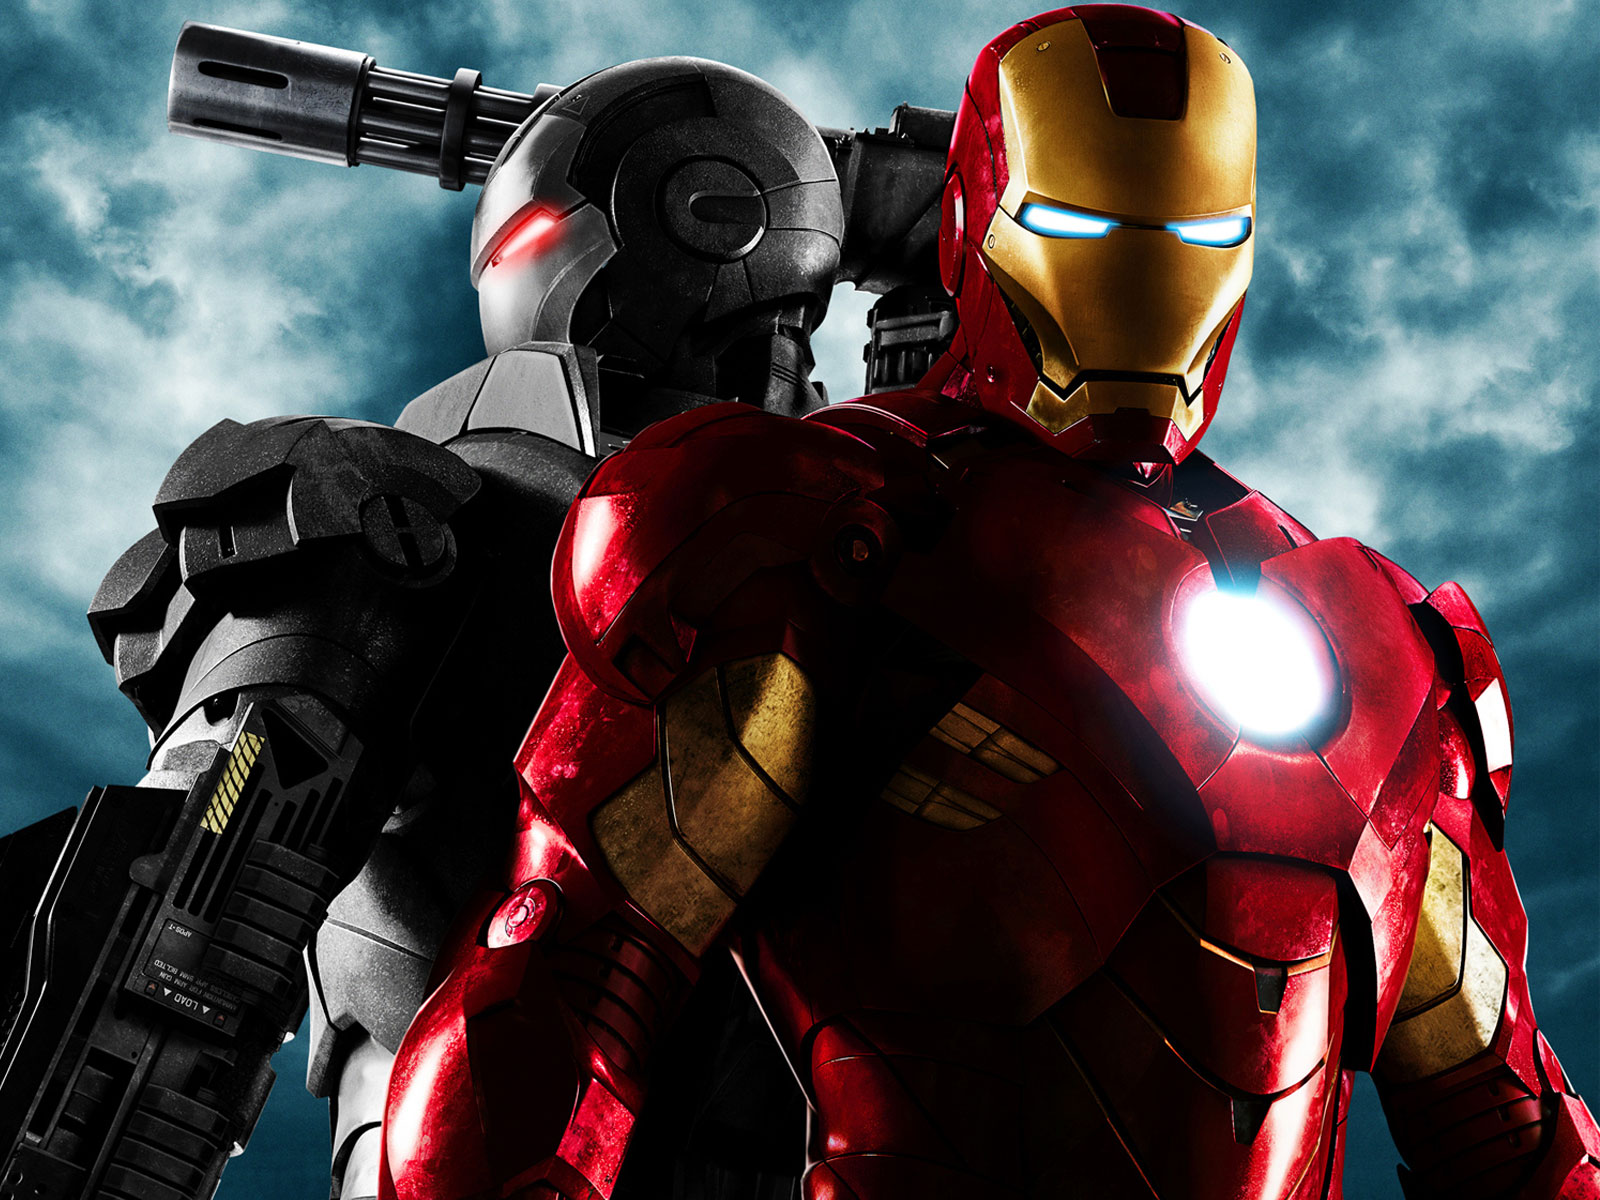 Iron Man 2 Photo Inspiration Pack 10 Hi Quality Pictures Wallpapers 1600x1200